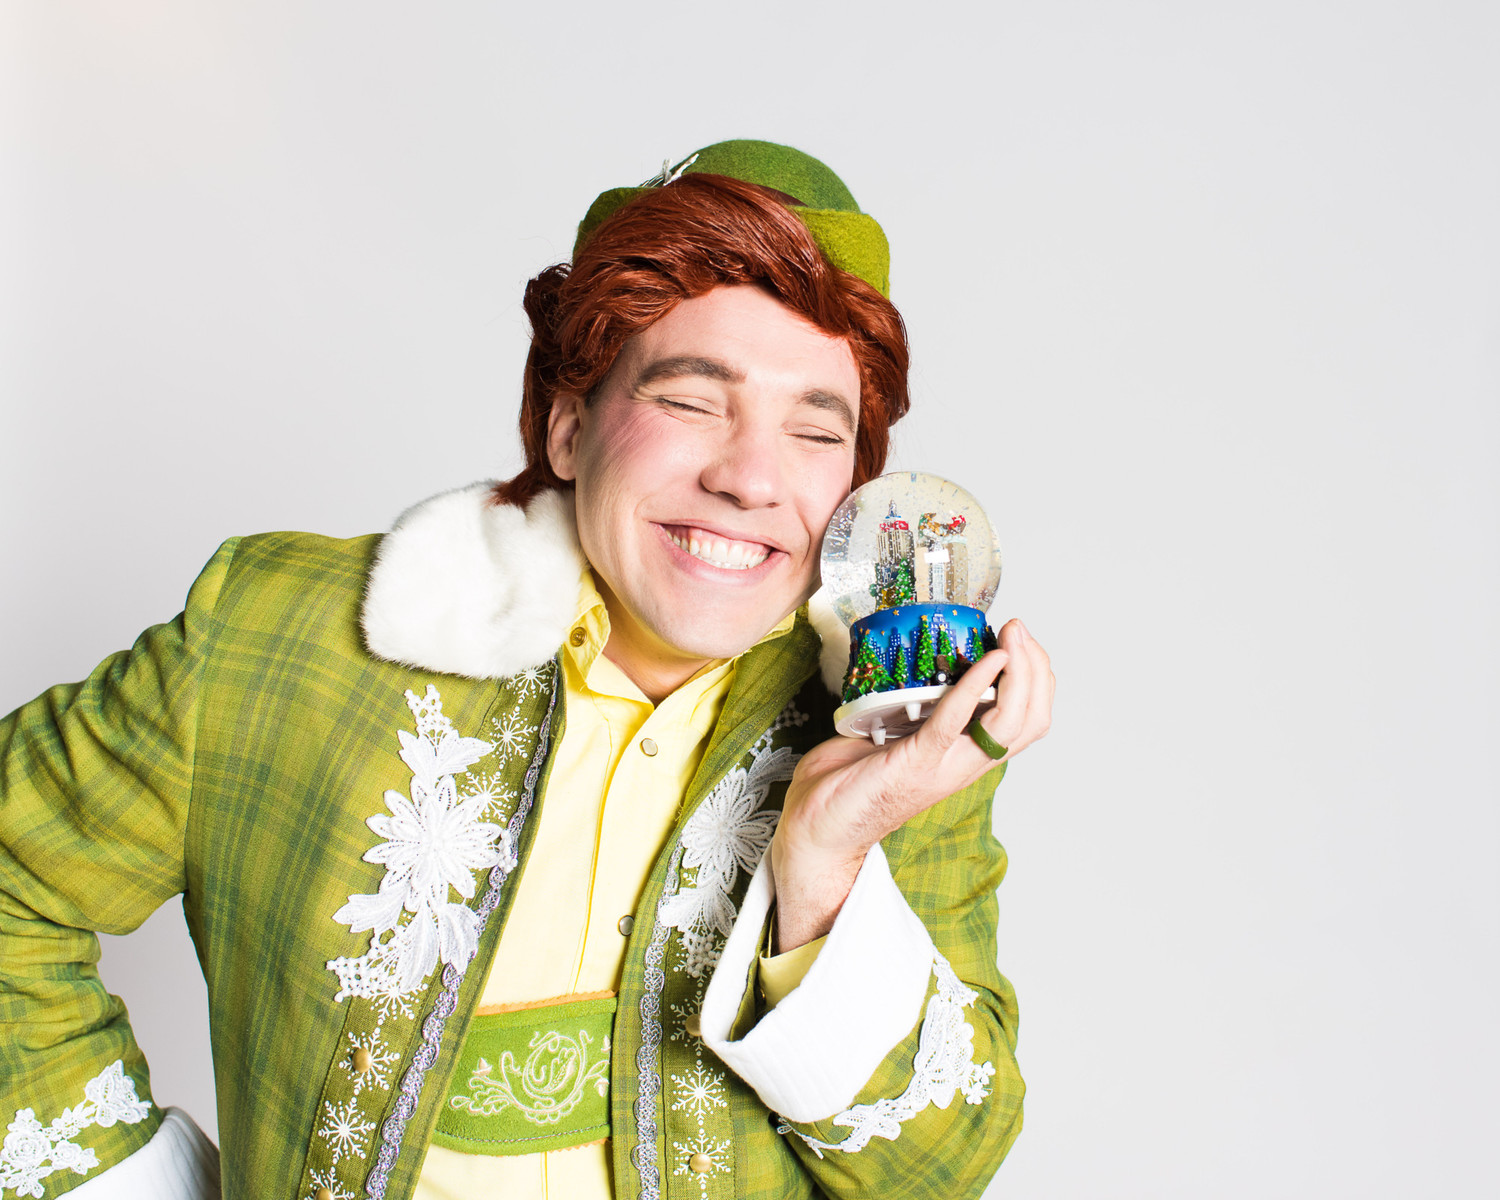 BWW Review: Singing Loud for All To Hear in CenterPoint Legacy's ELF THE MUSICAL.